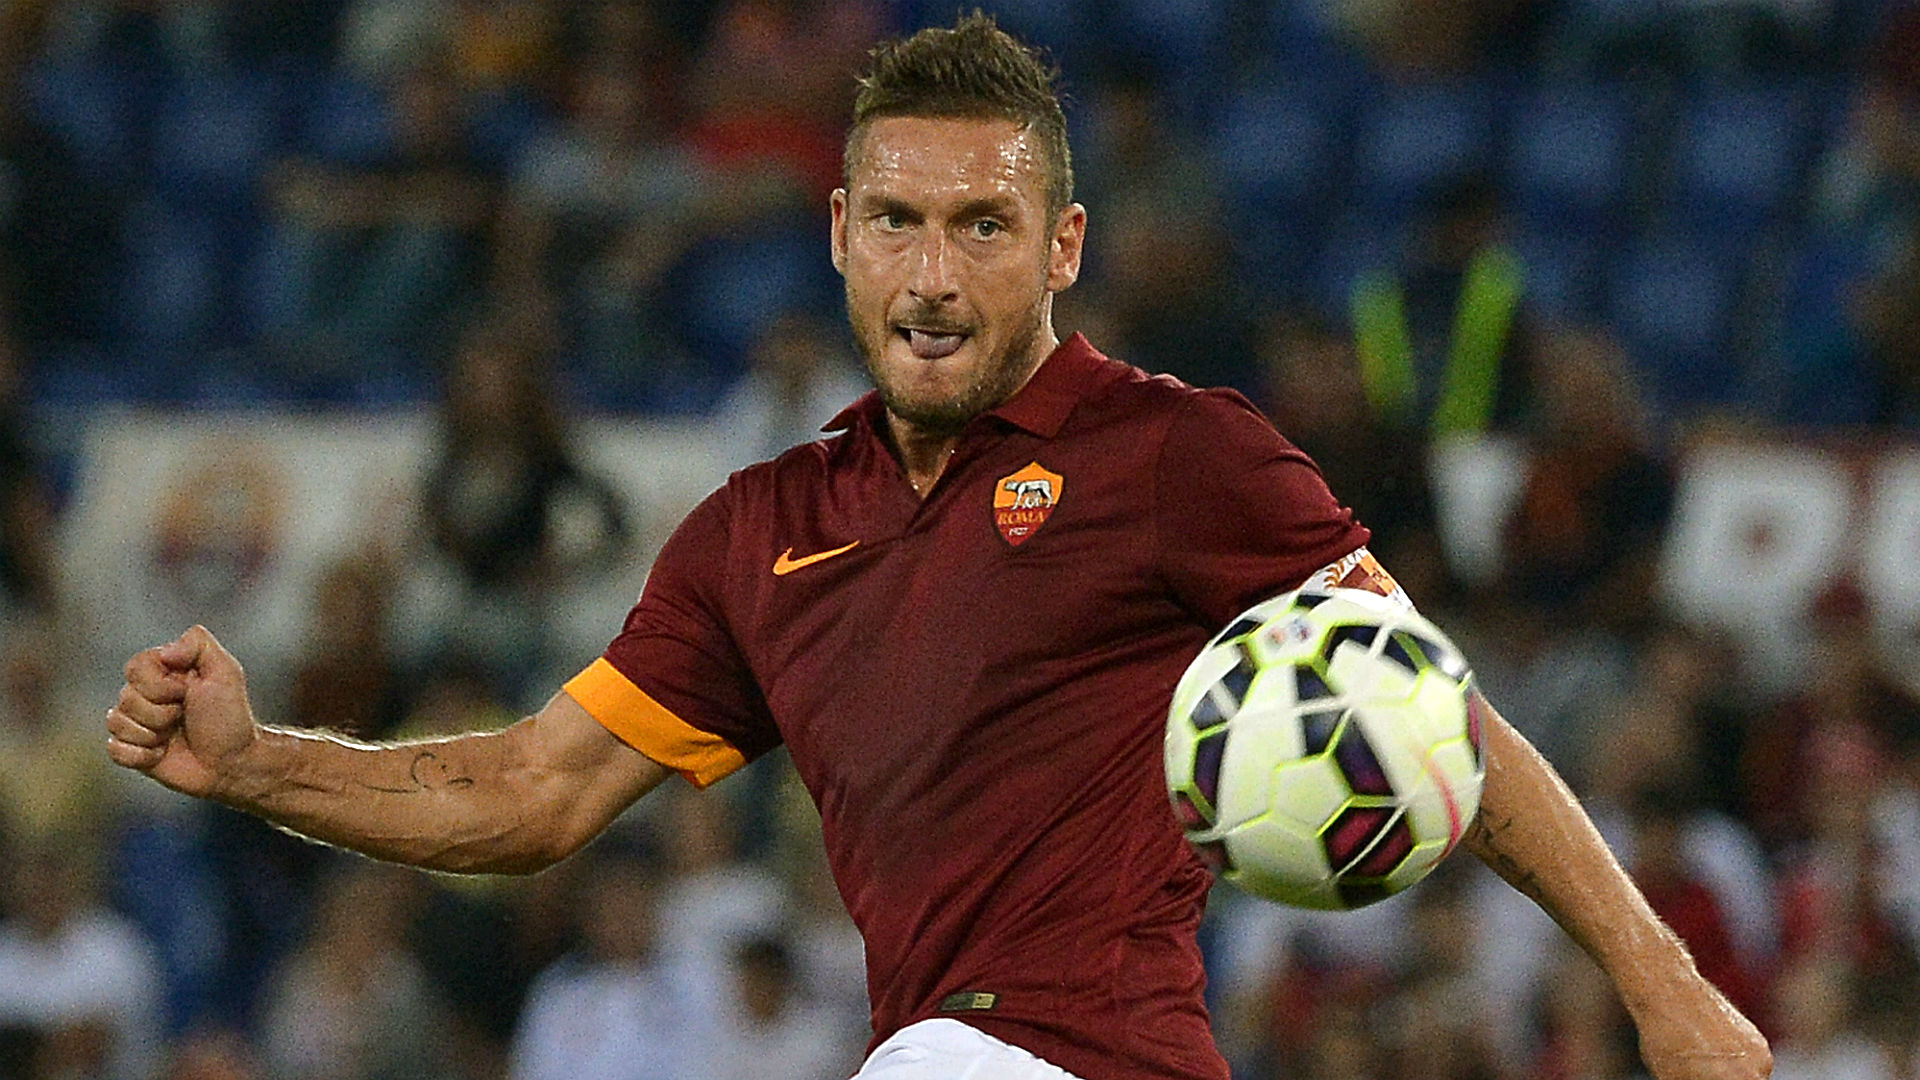 Roma vs. Manchester City betting preview and pick – Totti and Co. to star as Aguero misses out